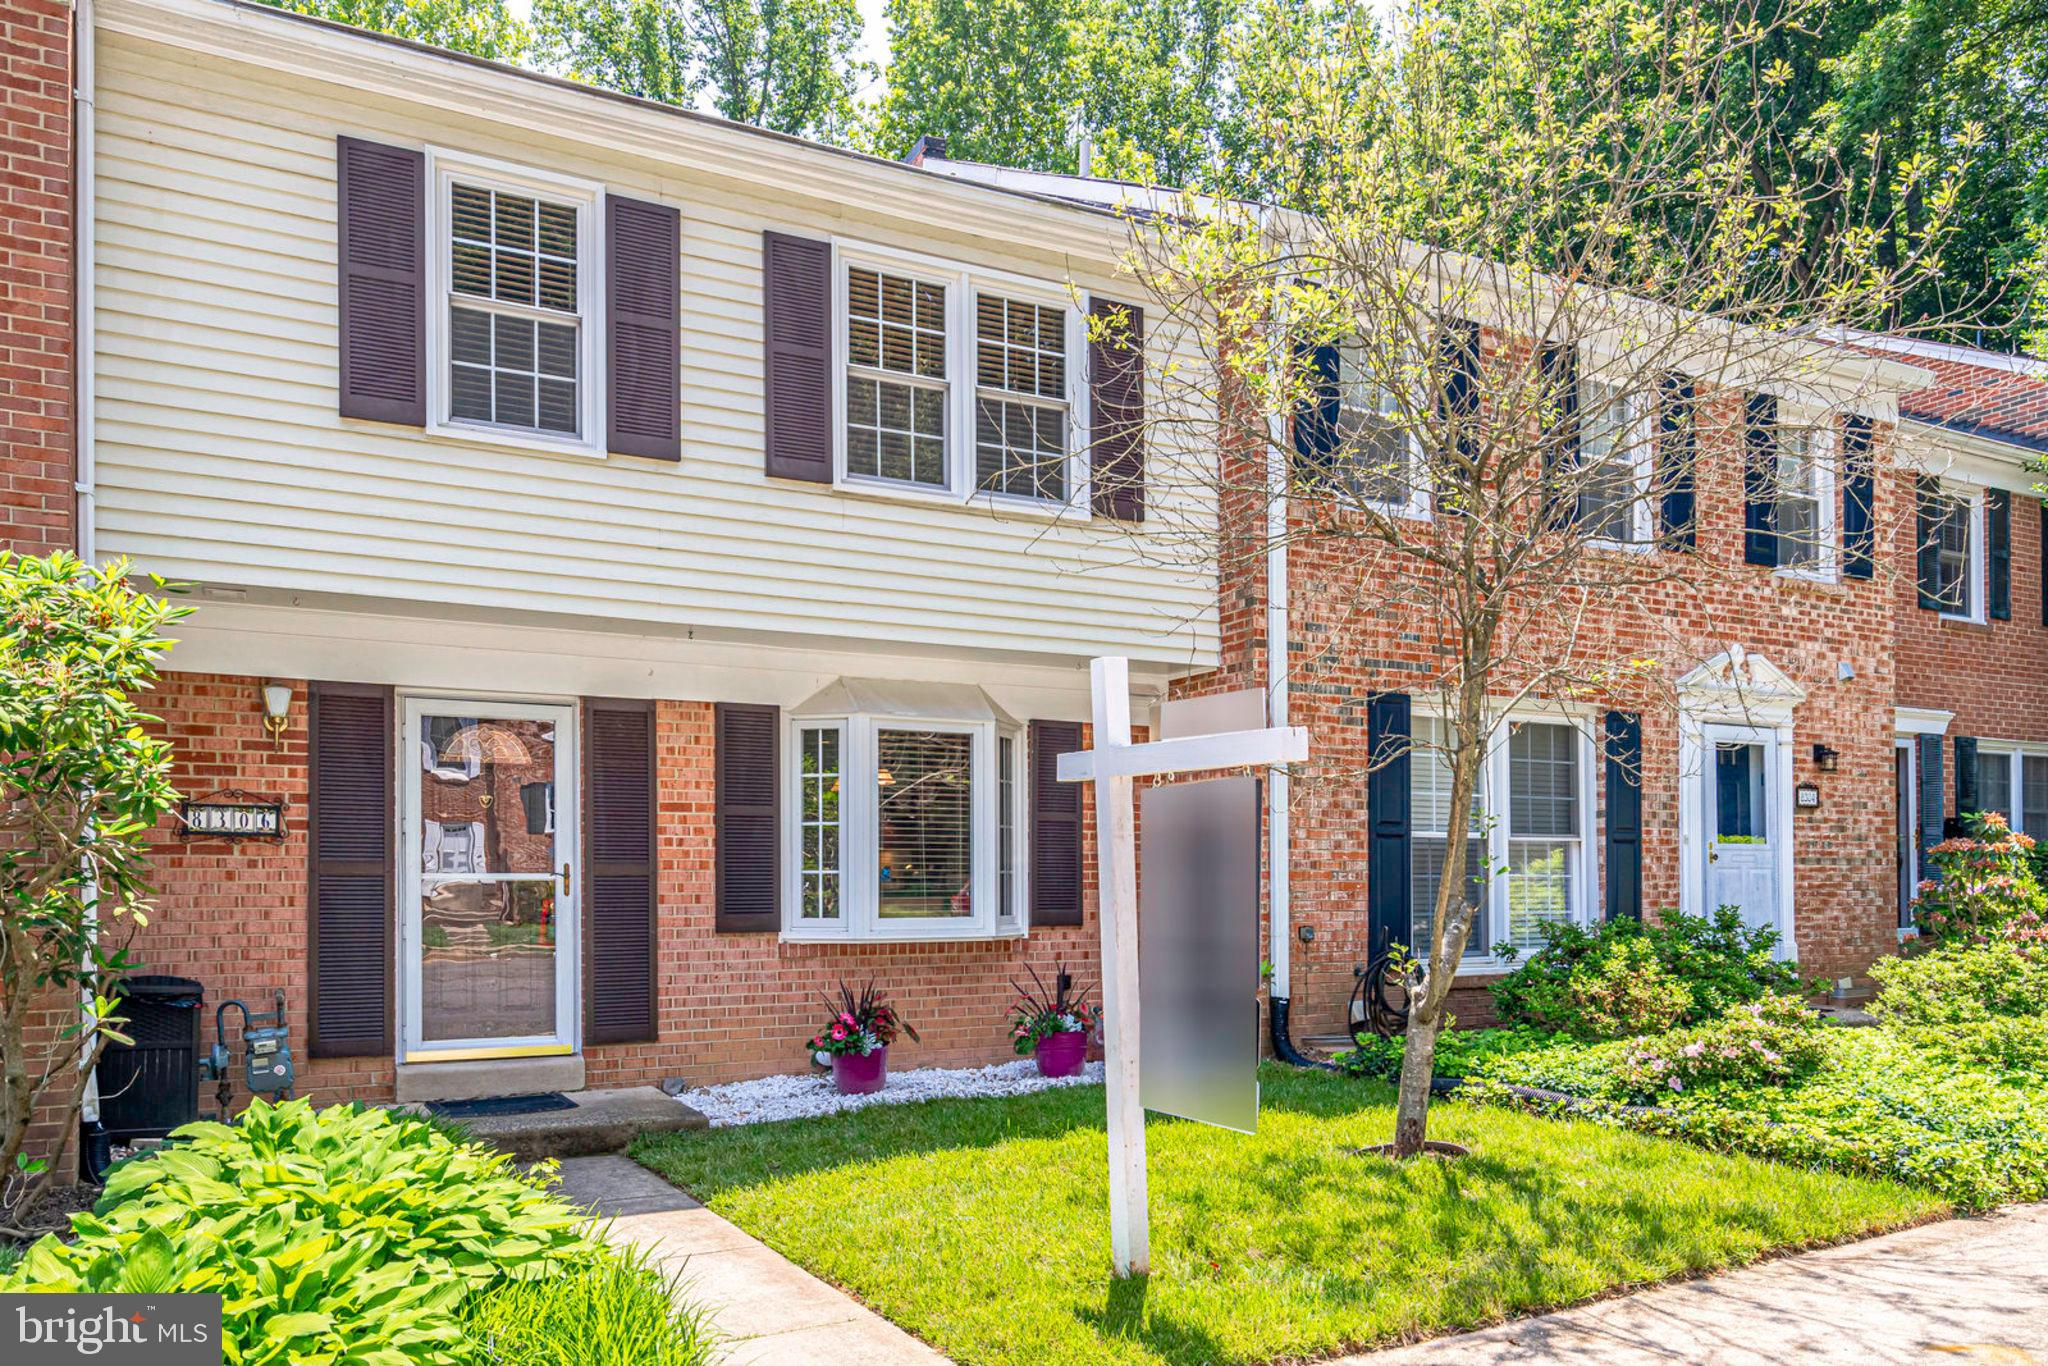 Please submit offers not later than Monday at noon.  This is the one you've been waiting for! Huntington model is the largest model in Danbury Forest with views of Parkland.  Open Floor plan with beautiful Gourmet Kitchen/Dinning Room designed for serious cooking and entertaining.  Granite countertops, ceramic backsplash, lots of cabinet space,  overlooking Living Room with large windows and slider to deck with a view of Lake Accotink Park.  You will not want to leave.  Upper Level offers 4 generous size bedrooms, Master Bedroom with hardwood floors and master bath.  Inviting Family Room in basement that walks out to fully fenced yard.  Updates include HVAC, Water Heater, Washer, etc.  Excellent Location with easy access to 495/95 VRE, Mosaic District.   Two bus stop at community pool. It serves two routes: 17L a northbound express bus to the Pentagon in the morning and a southbound express in the late afternoon/evenings. The 17B also goes to/from the Pentagon.